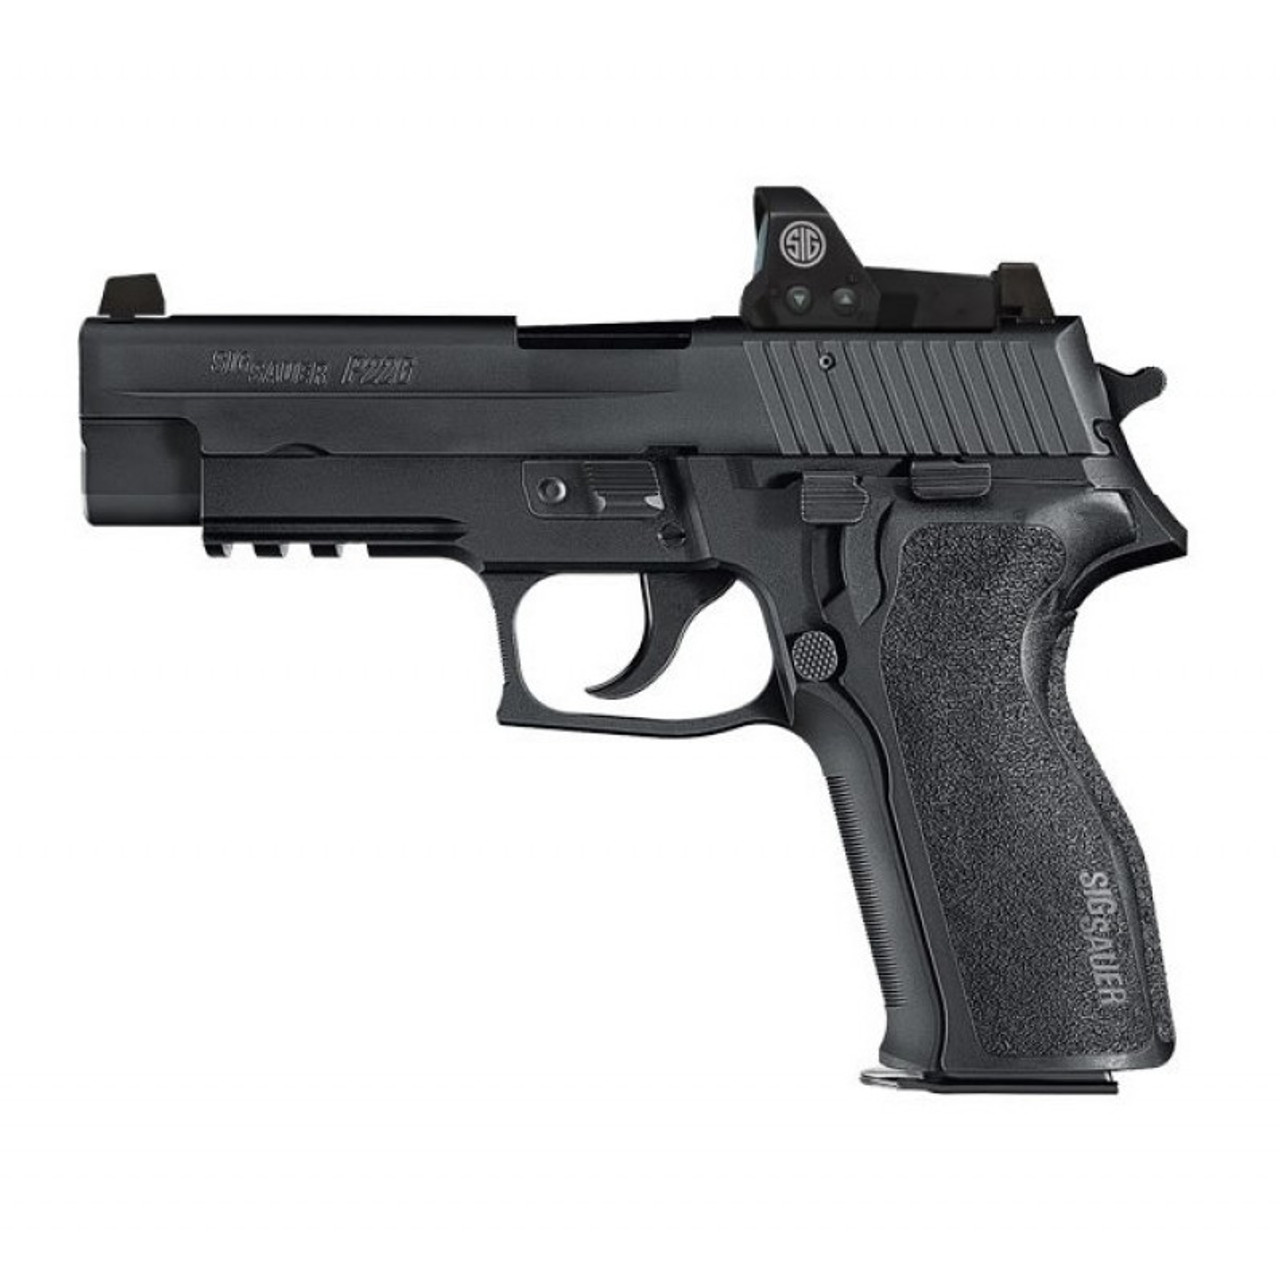 Sig Sauer P226 RX 9mm with ROMEO1 Reflex Sight